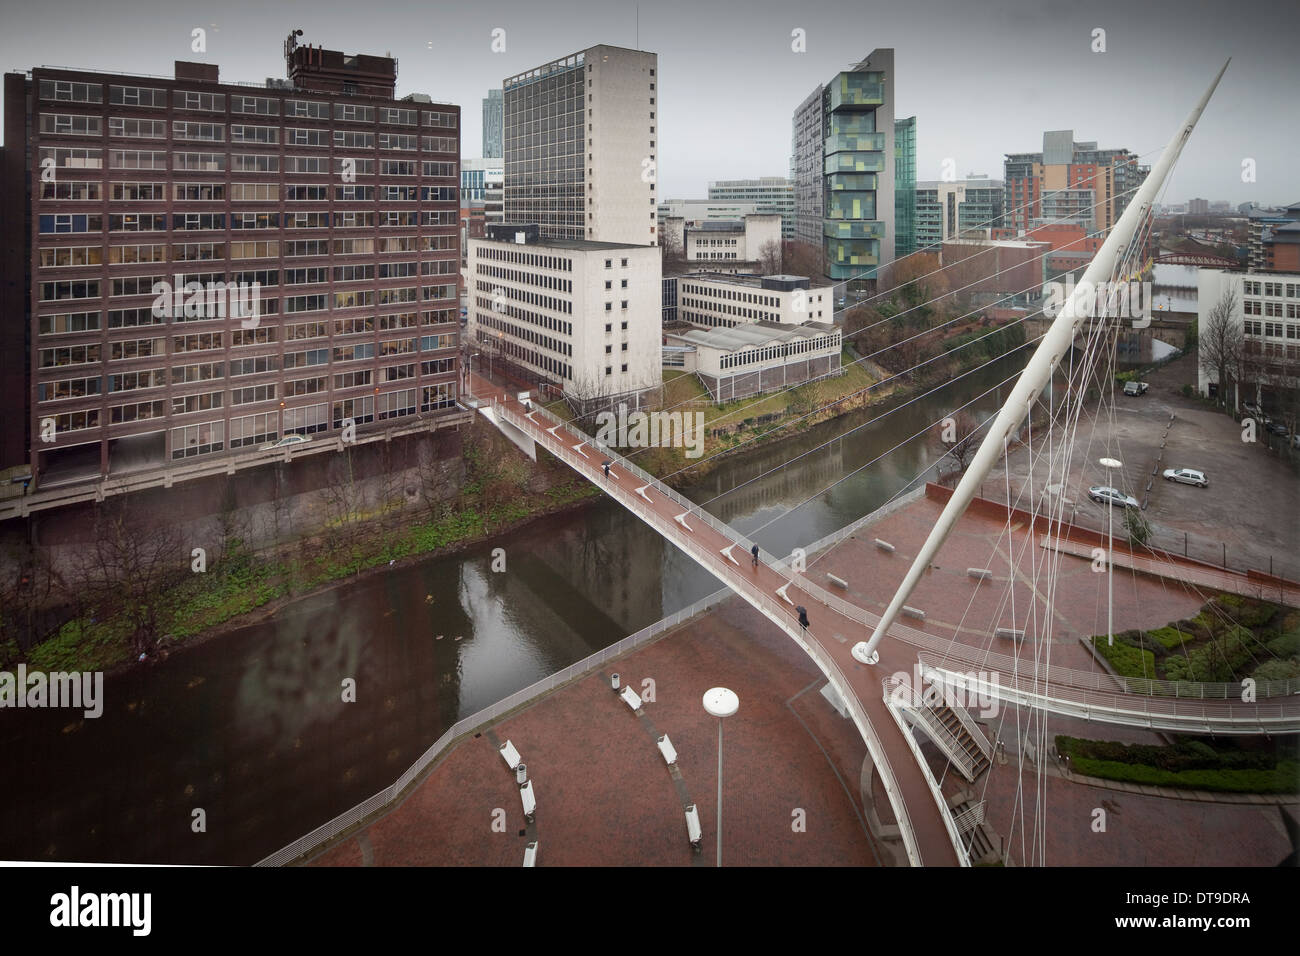 Trinity bridge taken from the Lowry hotel in Salford as it bridges the River Irwell over to Manchester city centre - Stock Image